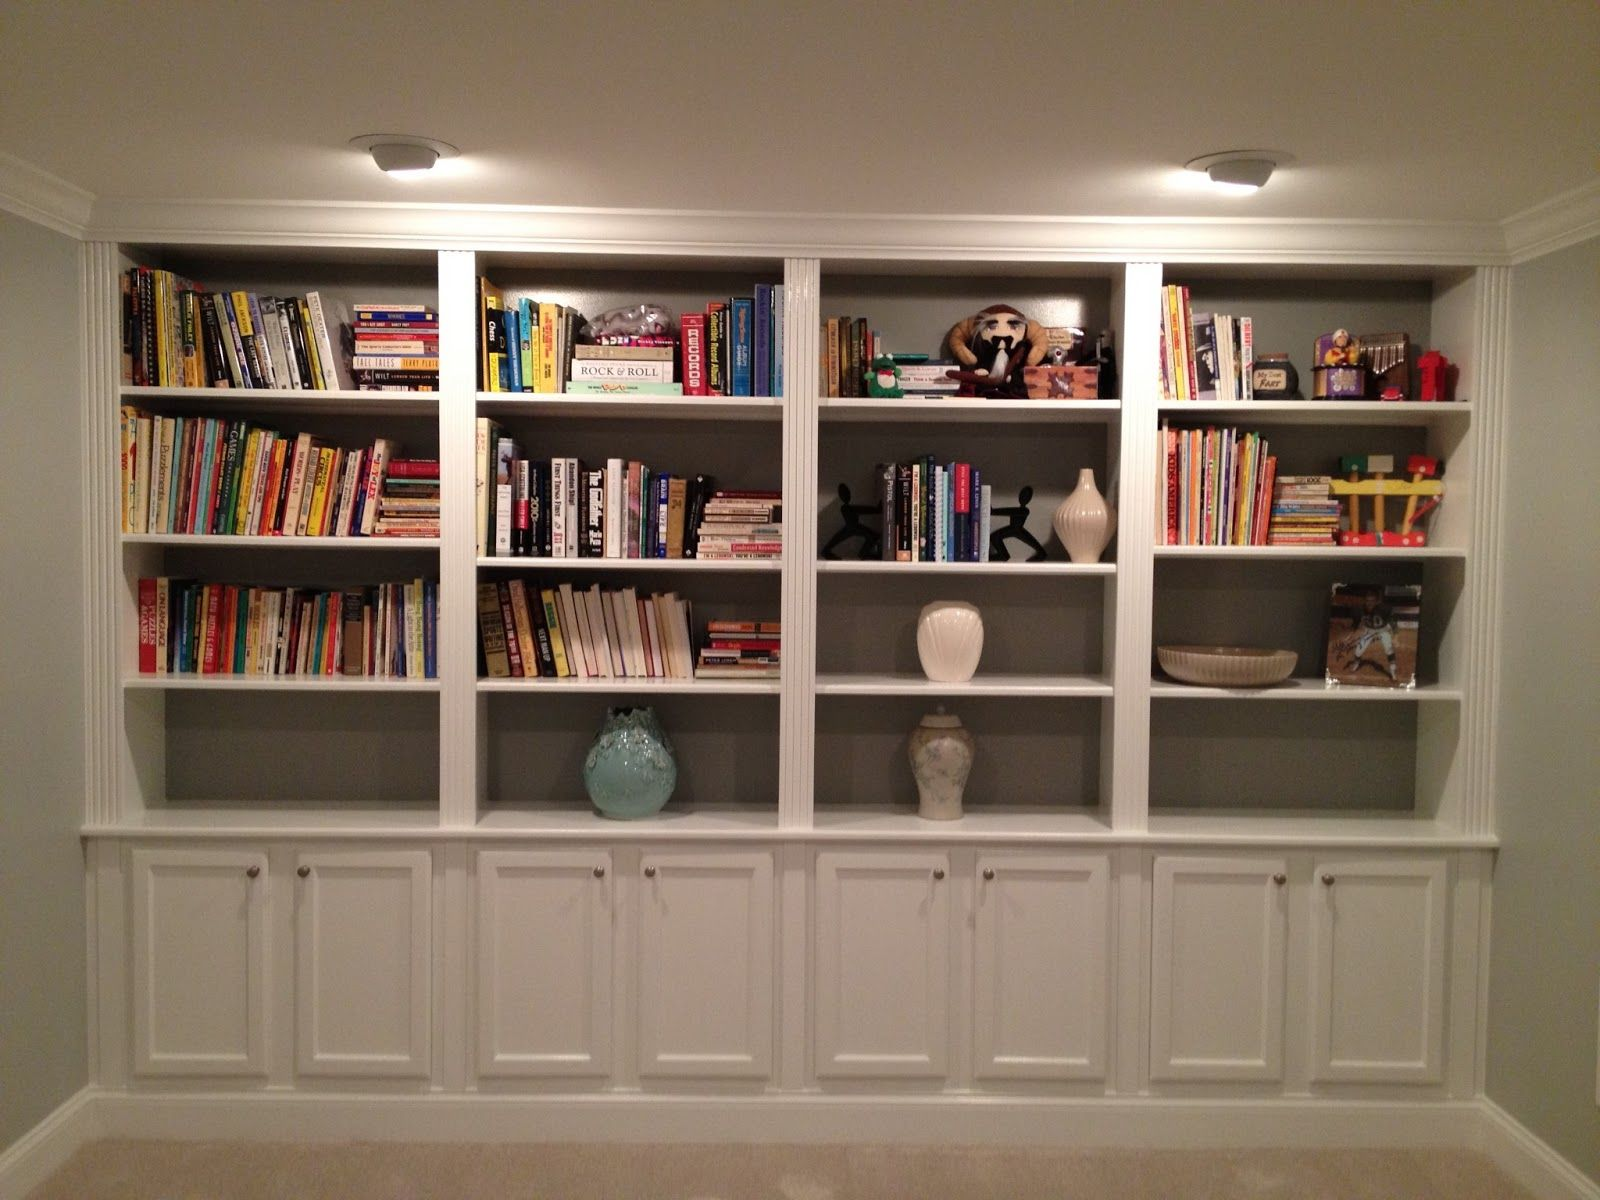 Floor To Ceiling Shelving Google Search Bookshelf Design